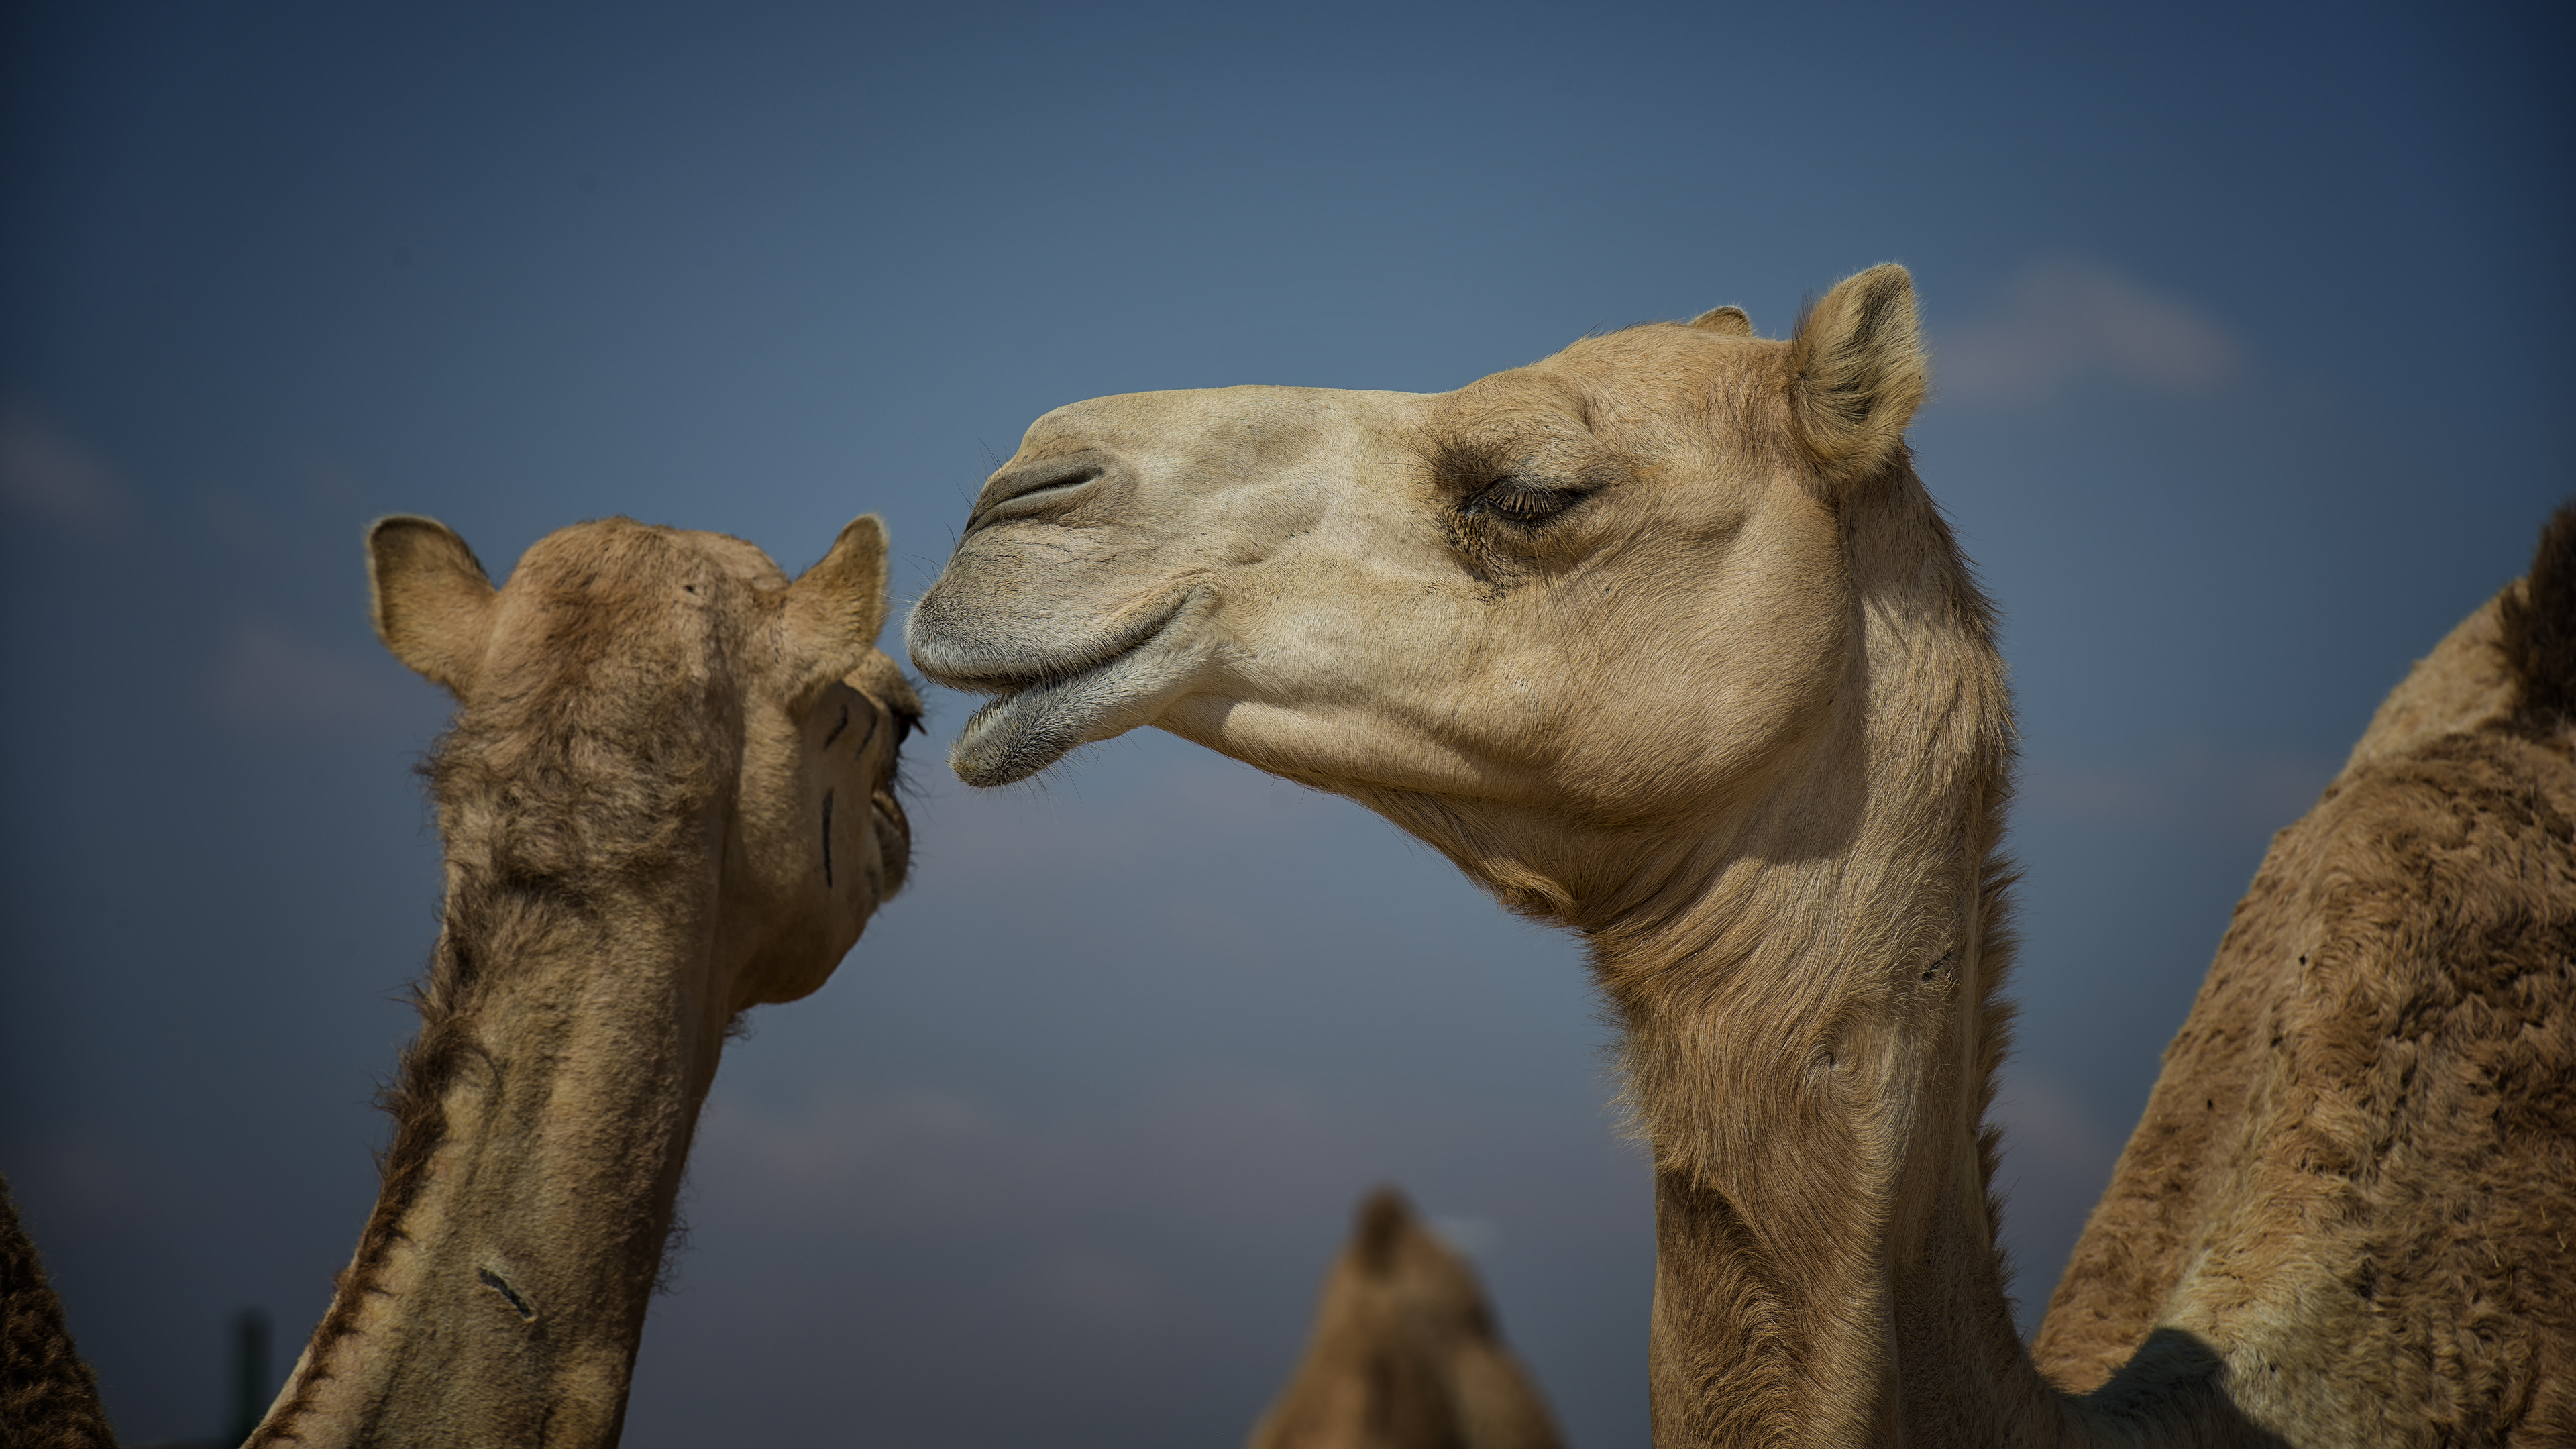 Camels really do chat